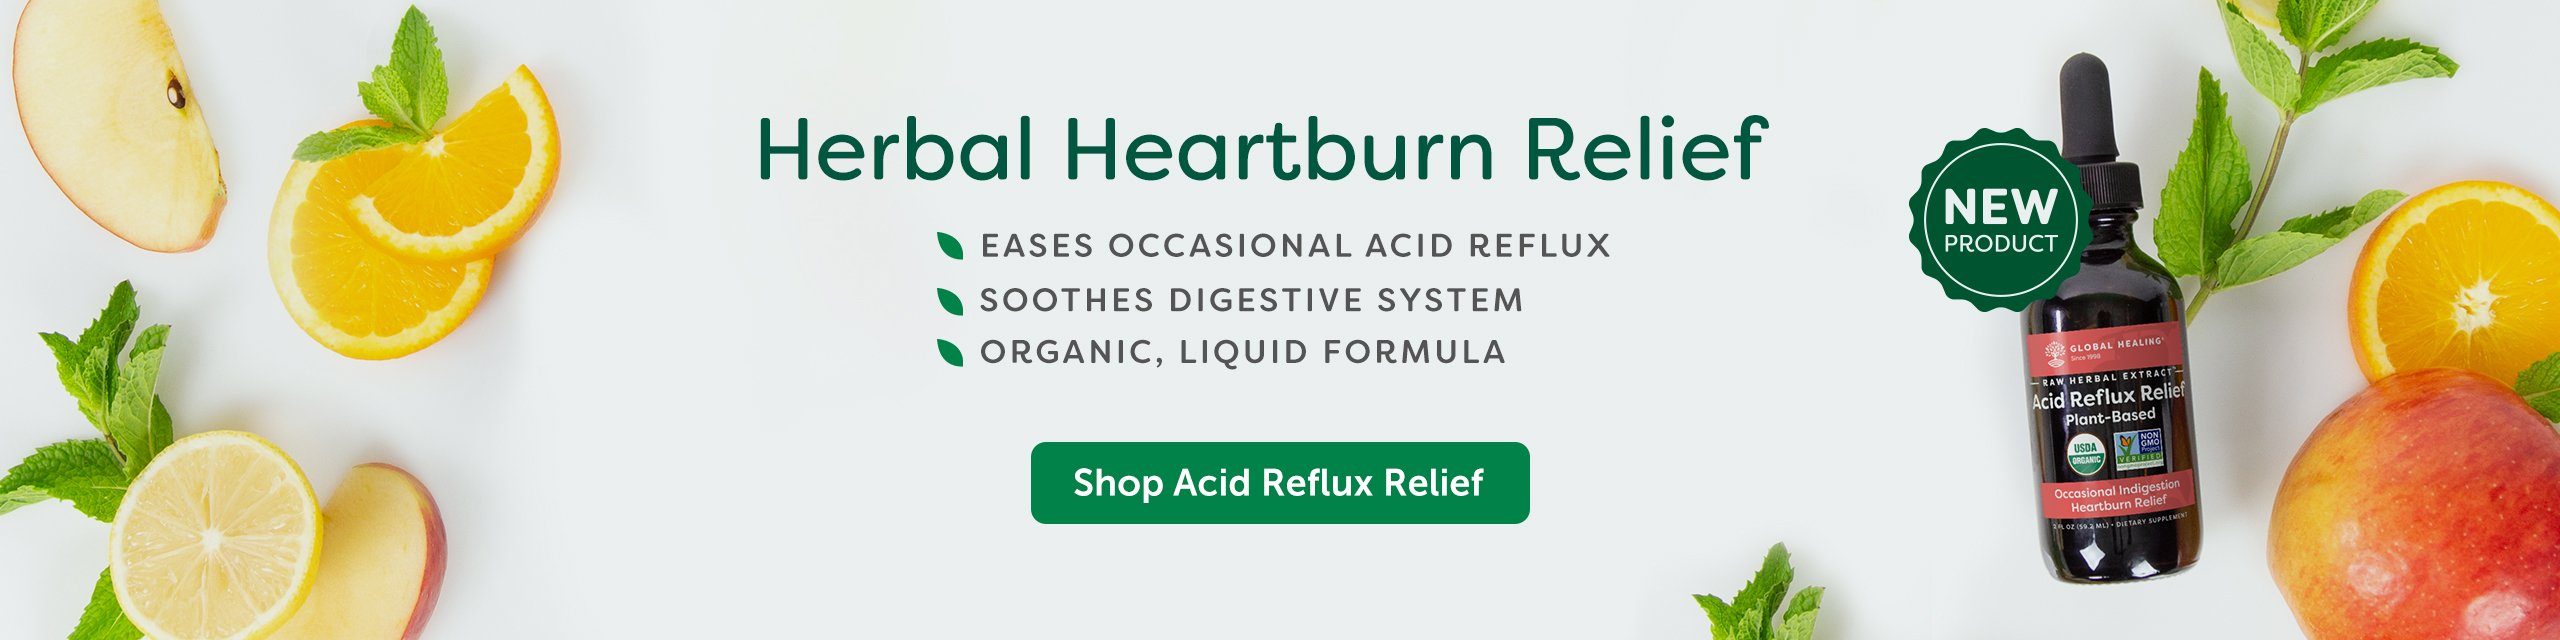 A bottle of Acid Reflux Relief